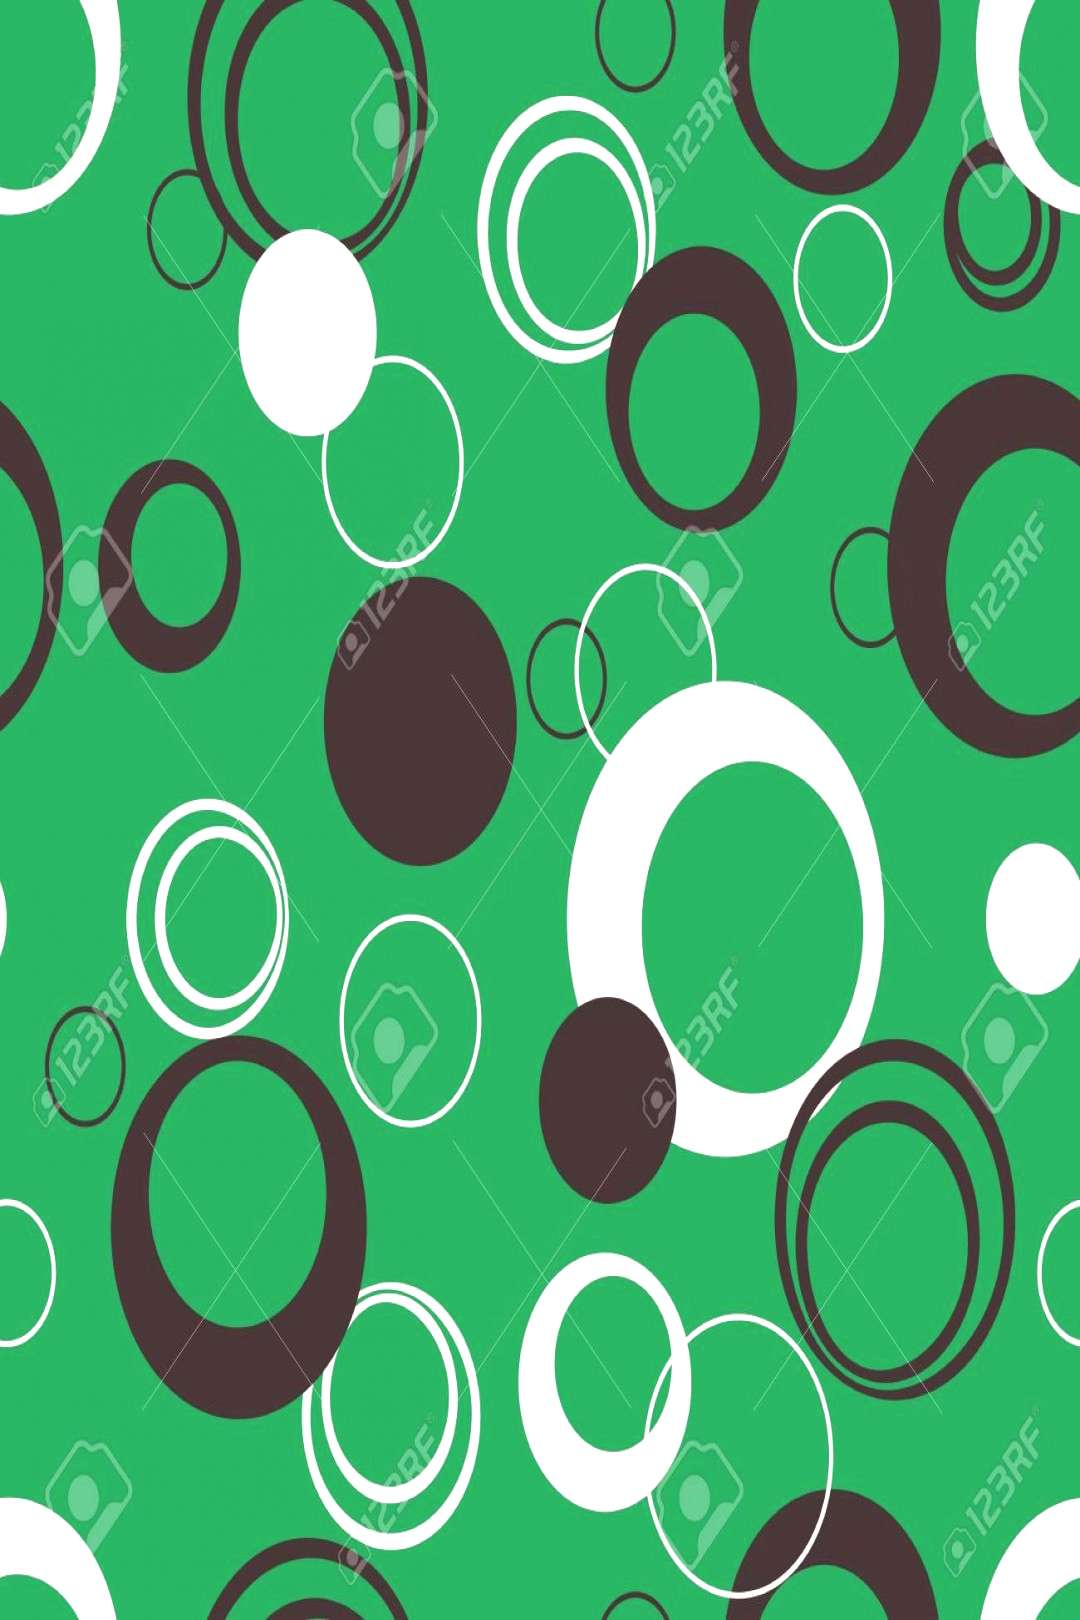 Abstract background with black and white circles. Illustration ,